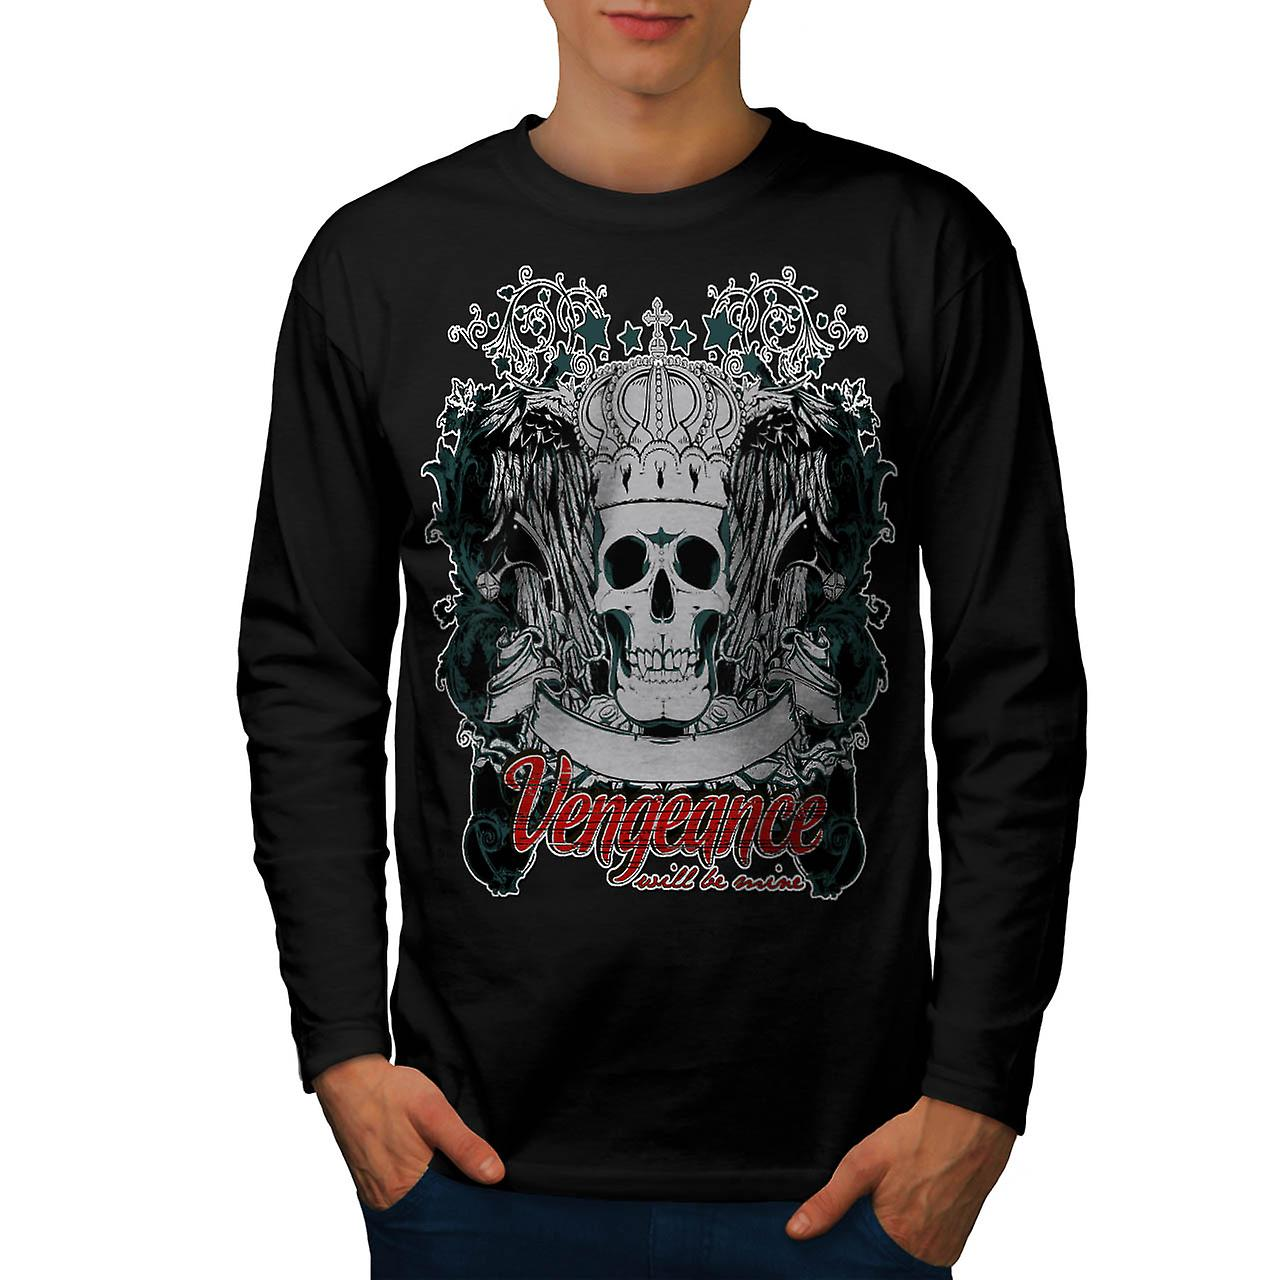 Vengeance Revenge Eye Thrones Men Black Long Sleeve T-shirt | Wellcoda